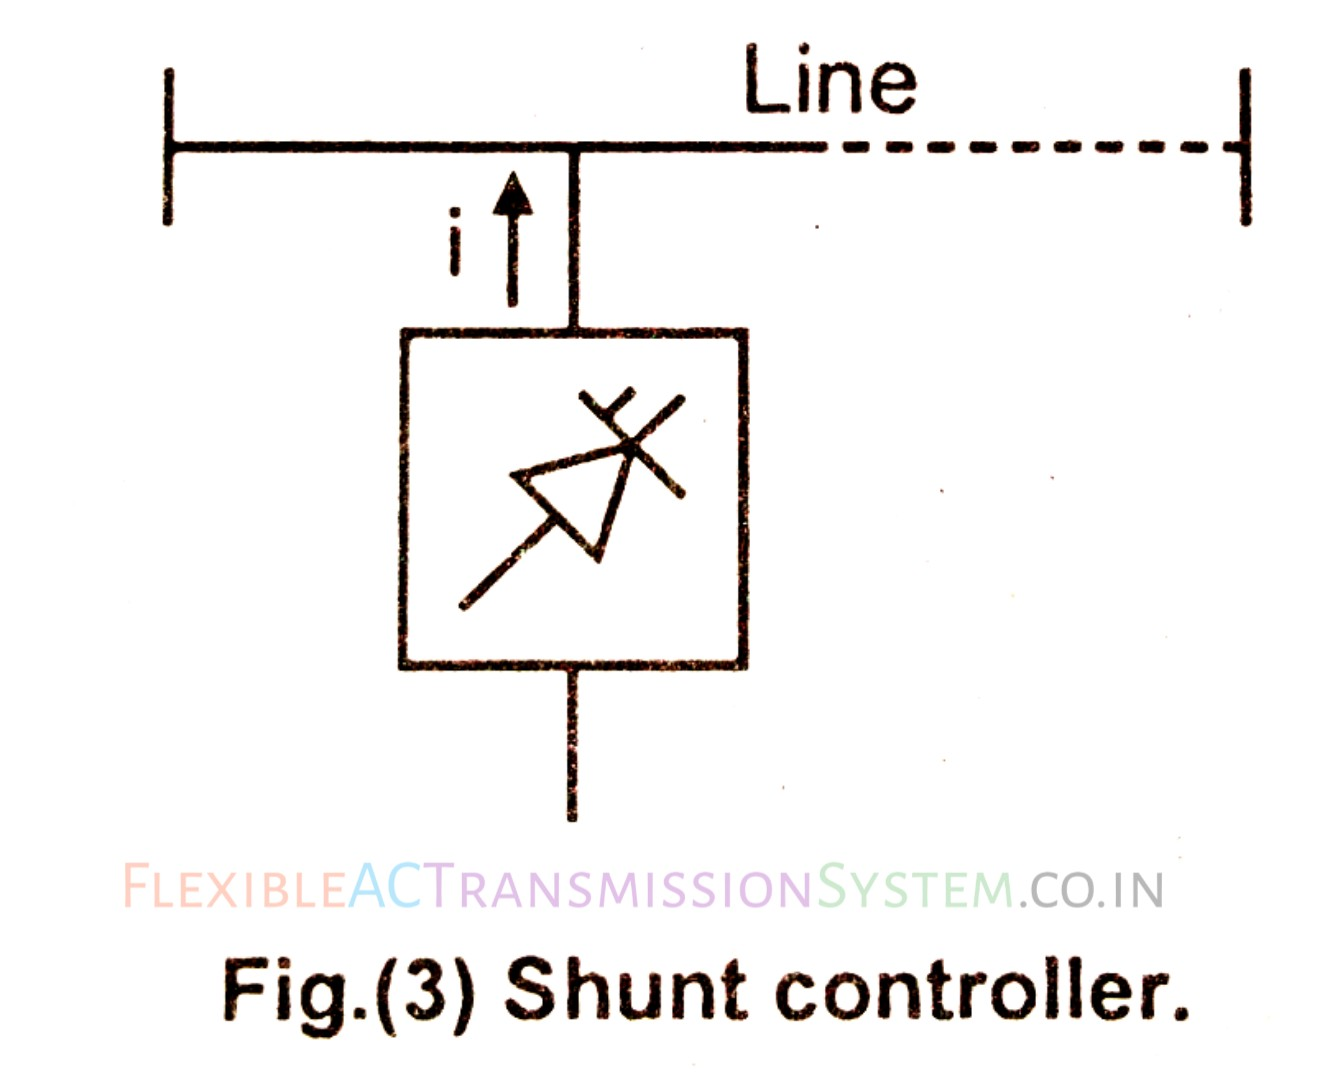 medium resolution of a controller which is connected in parallel with the transmission line called a shunt controller is as shown in fig 3